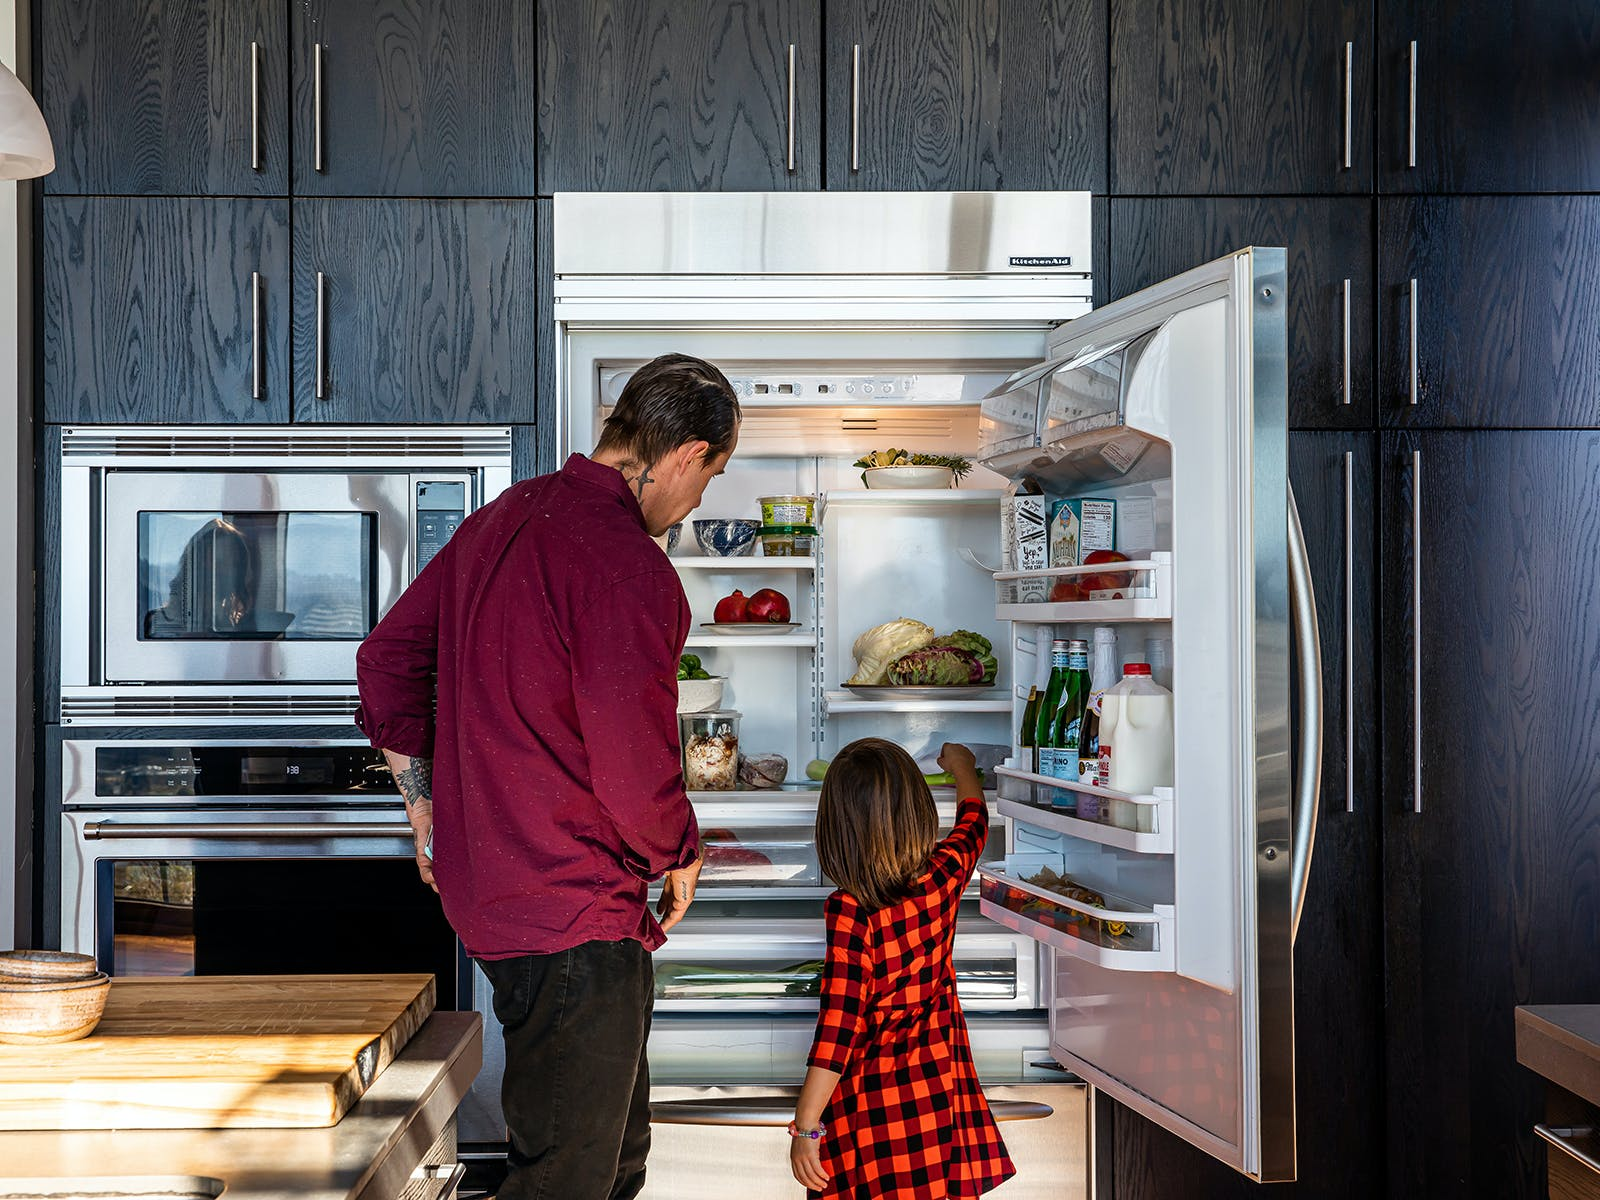 chef gabriel and his daughter take stock of the fridge of their vacation rental